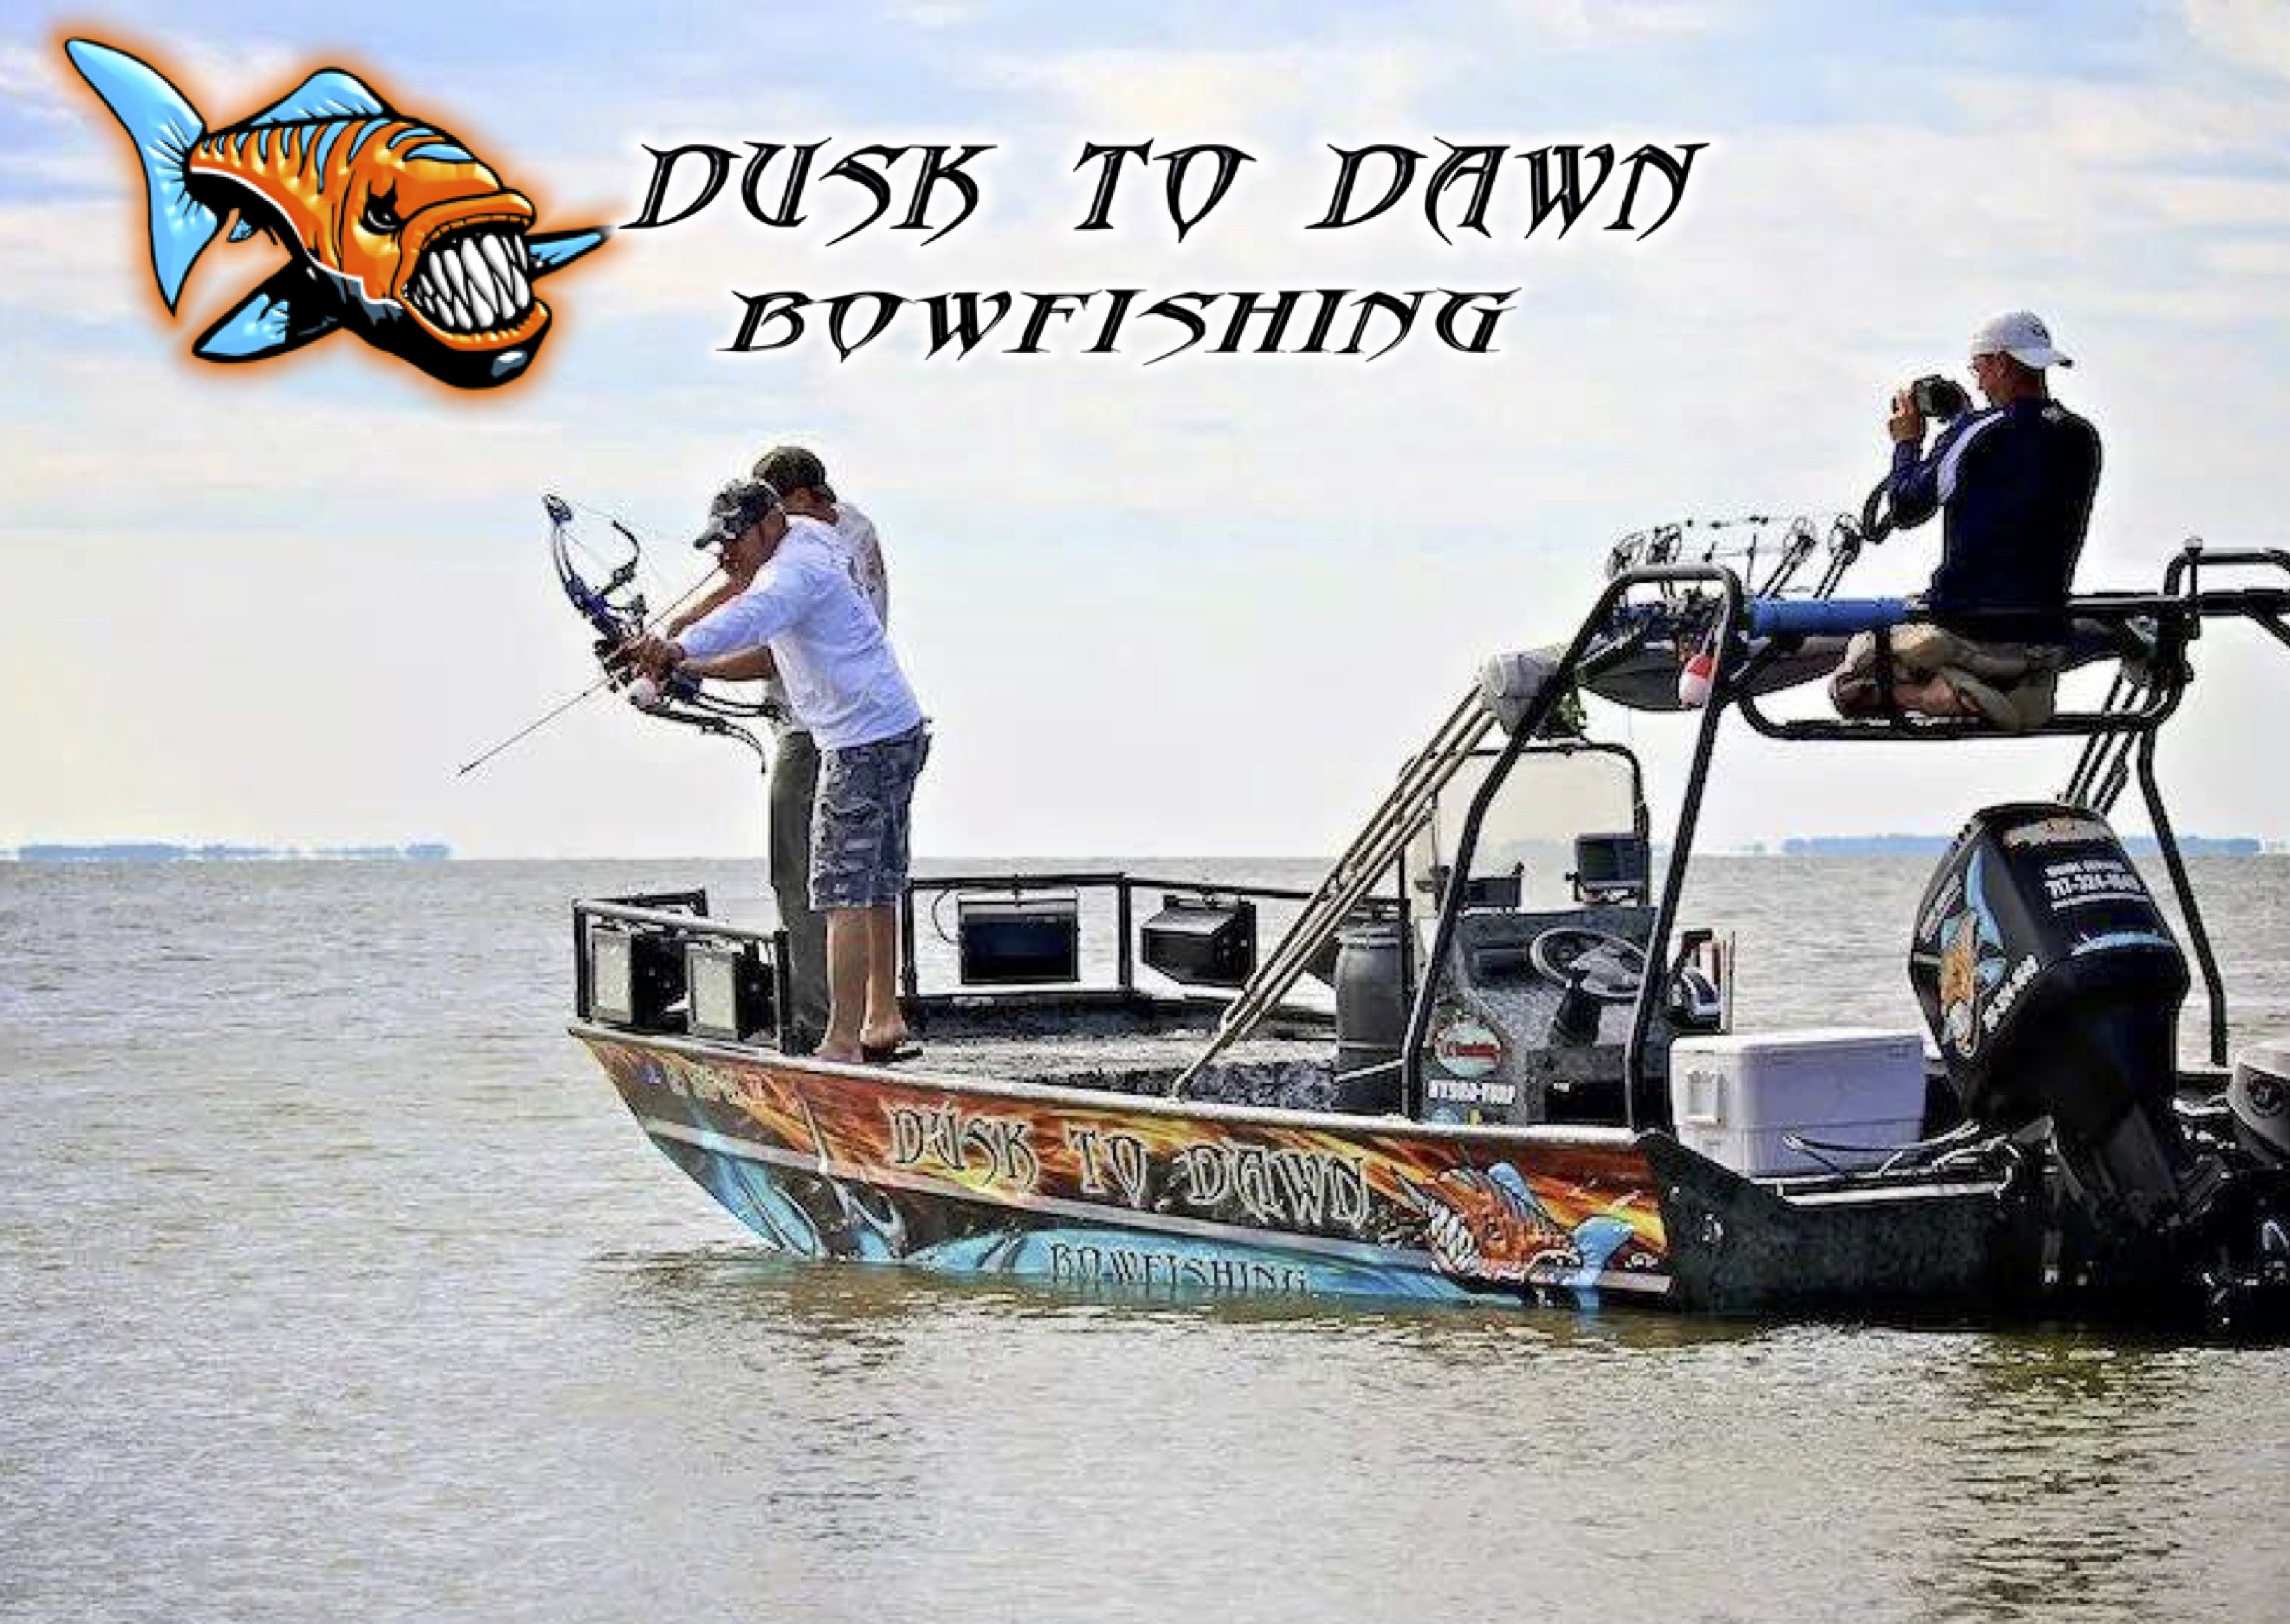 Dusk To Dawn Bowfishing